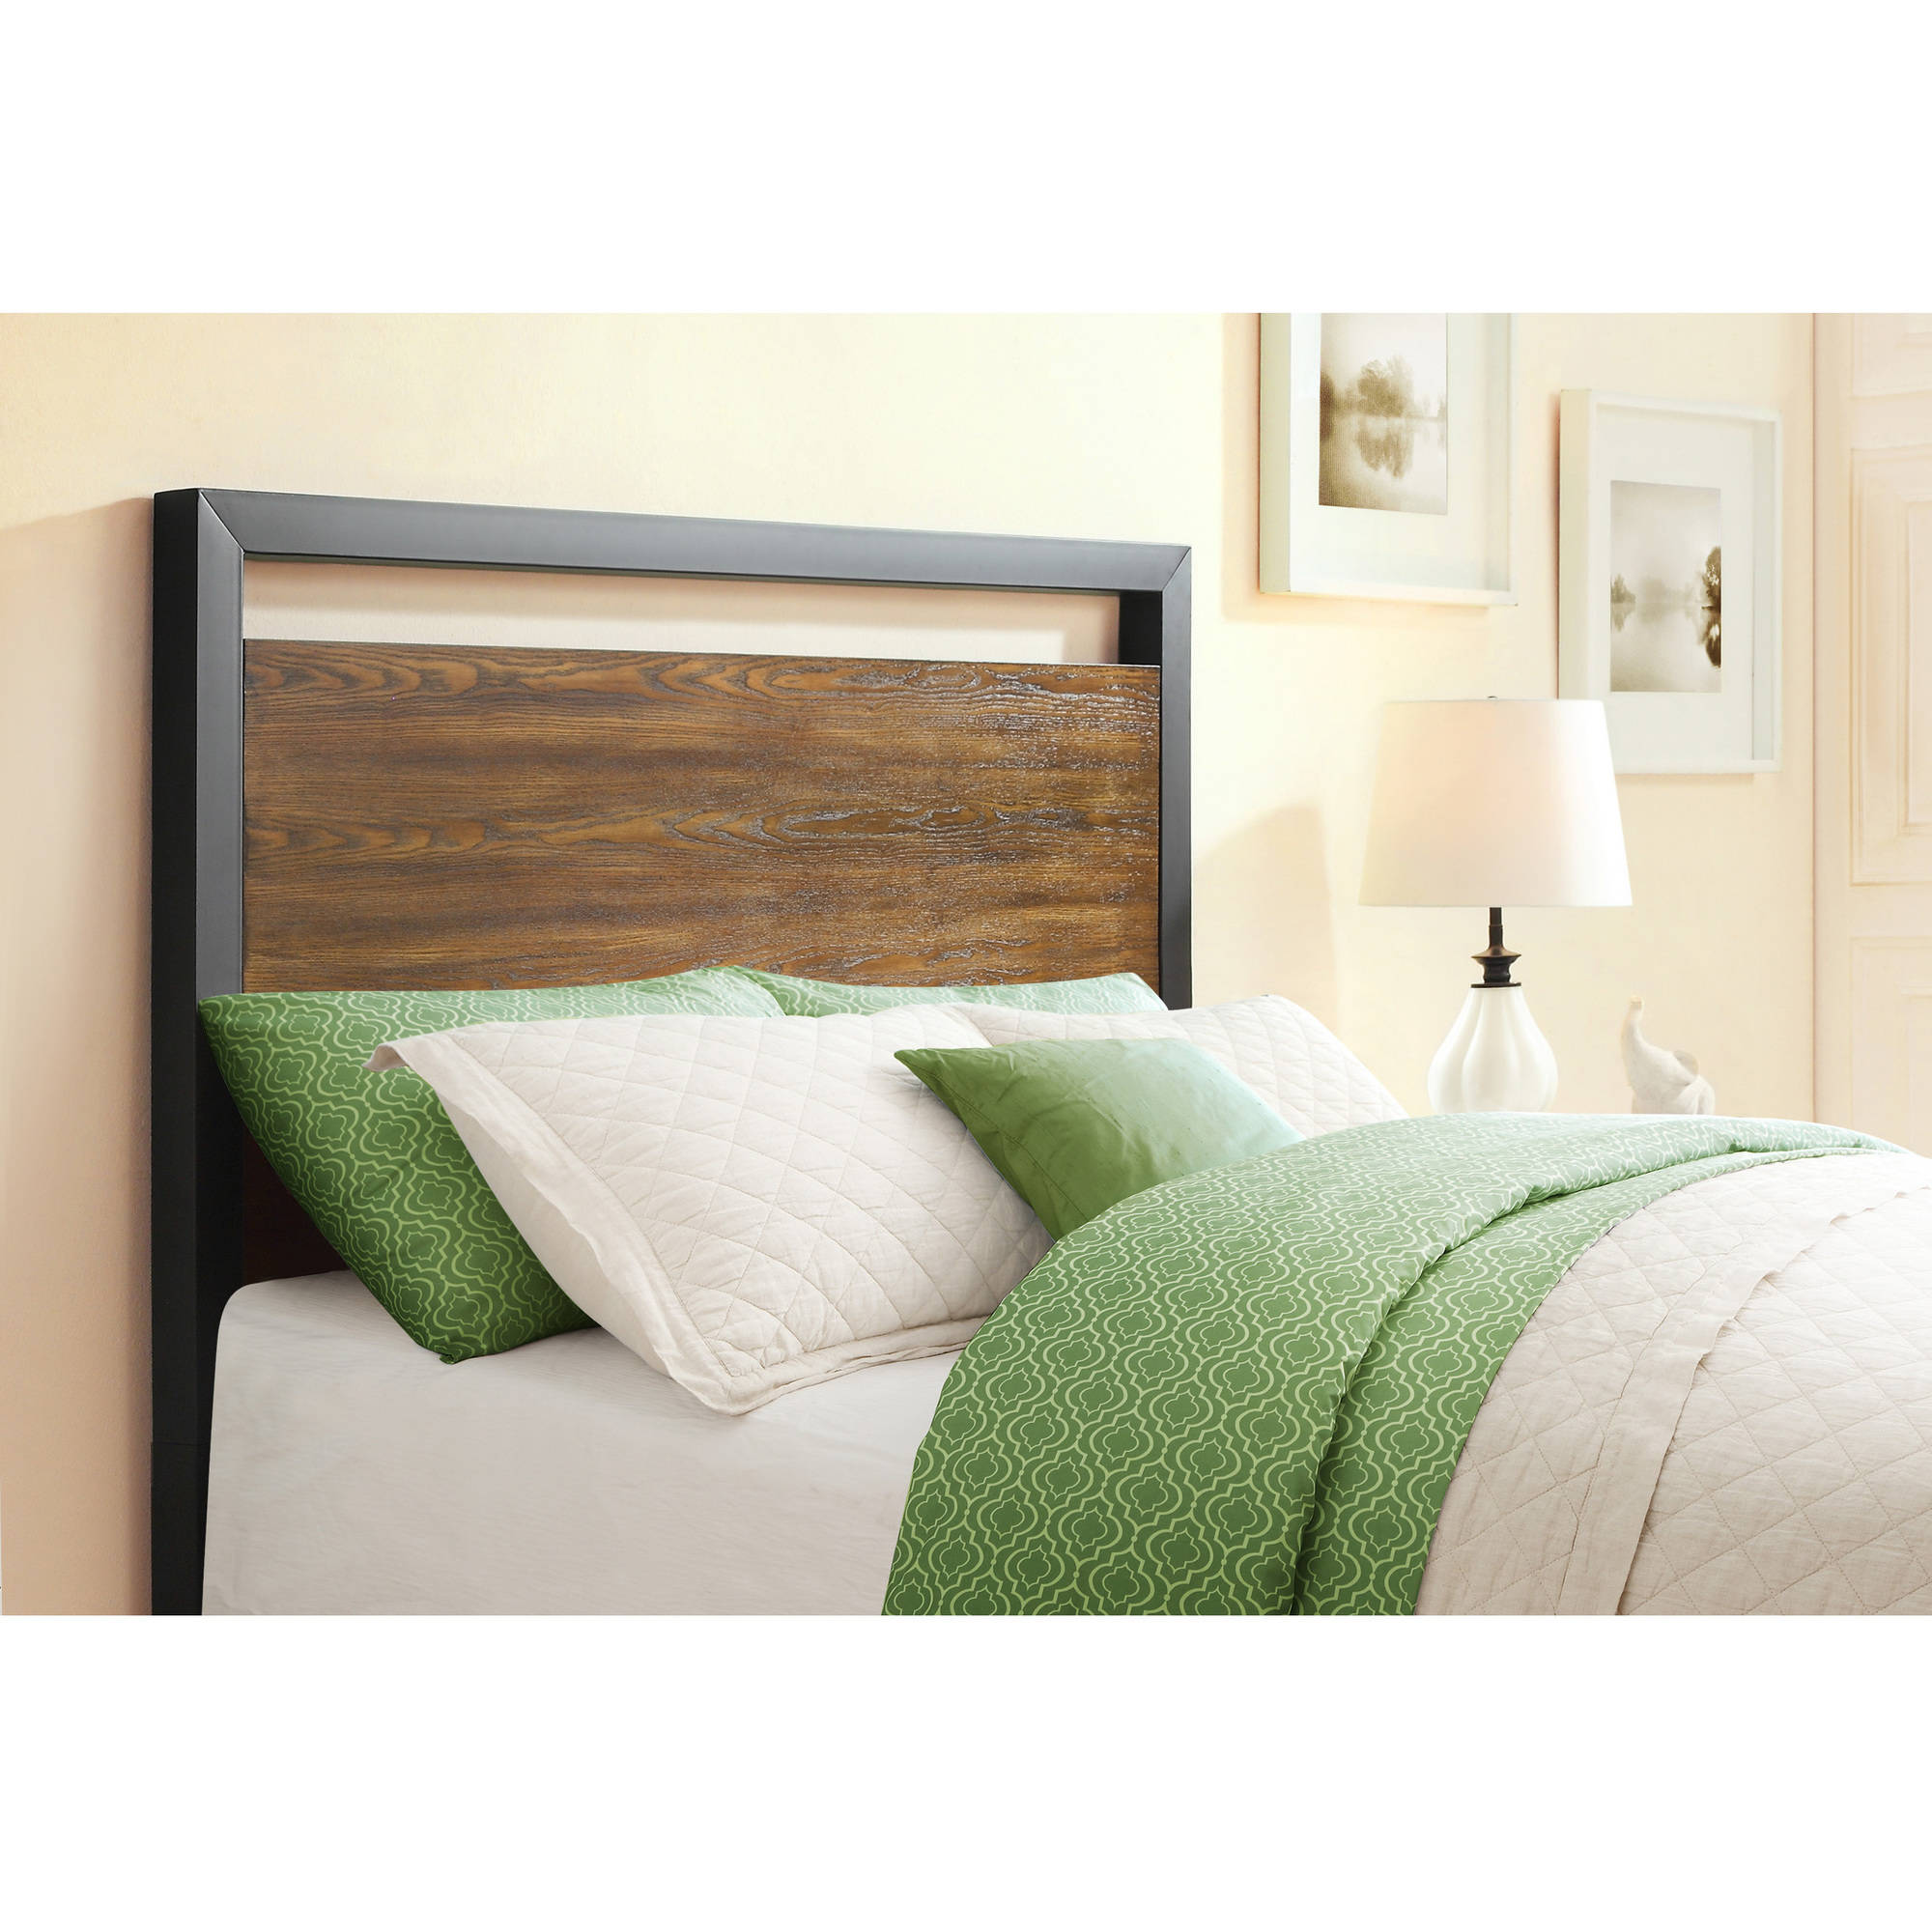 better homes gardens mercer full queen headboard vintage oak finish walmart com